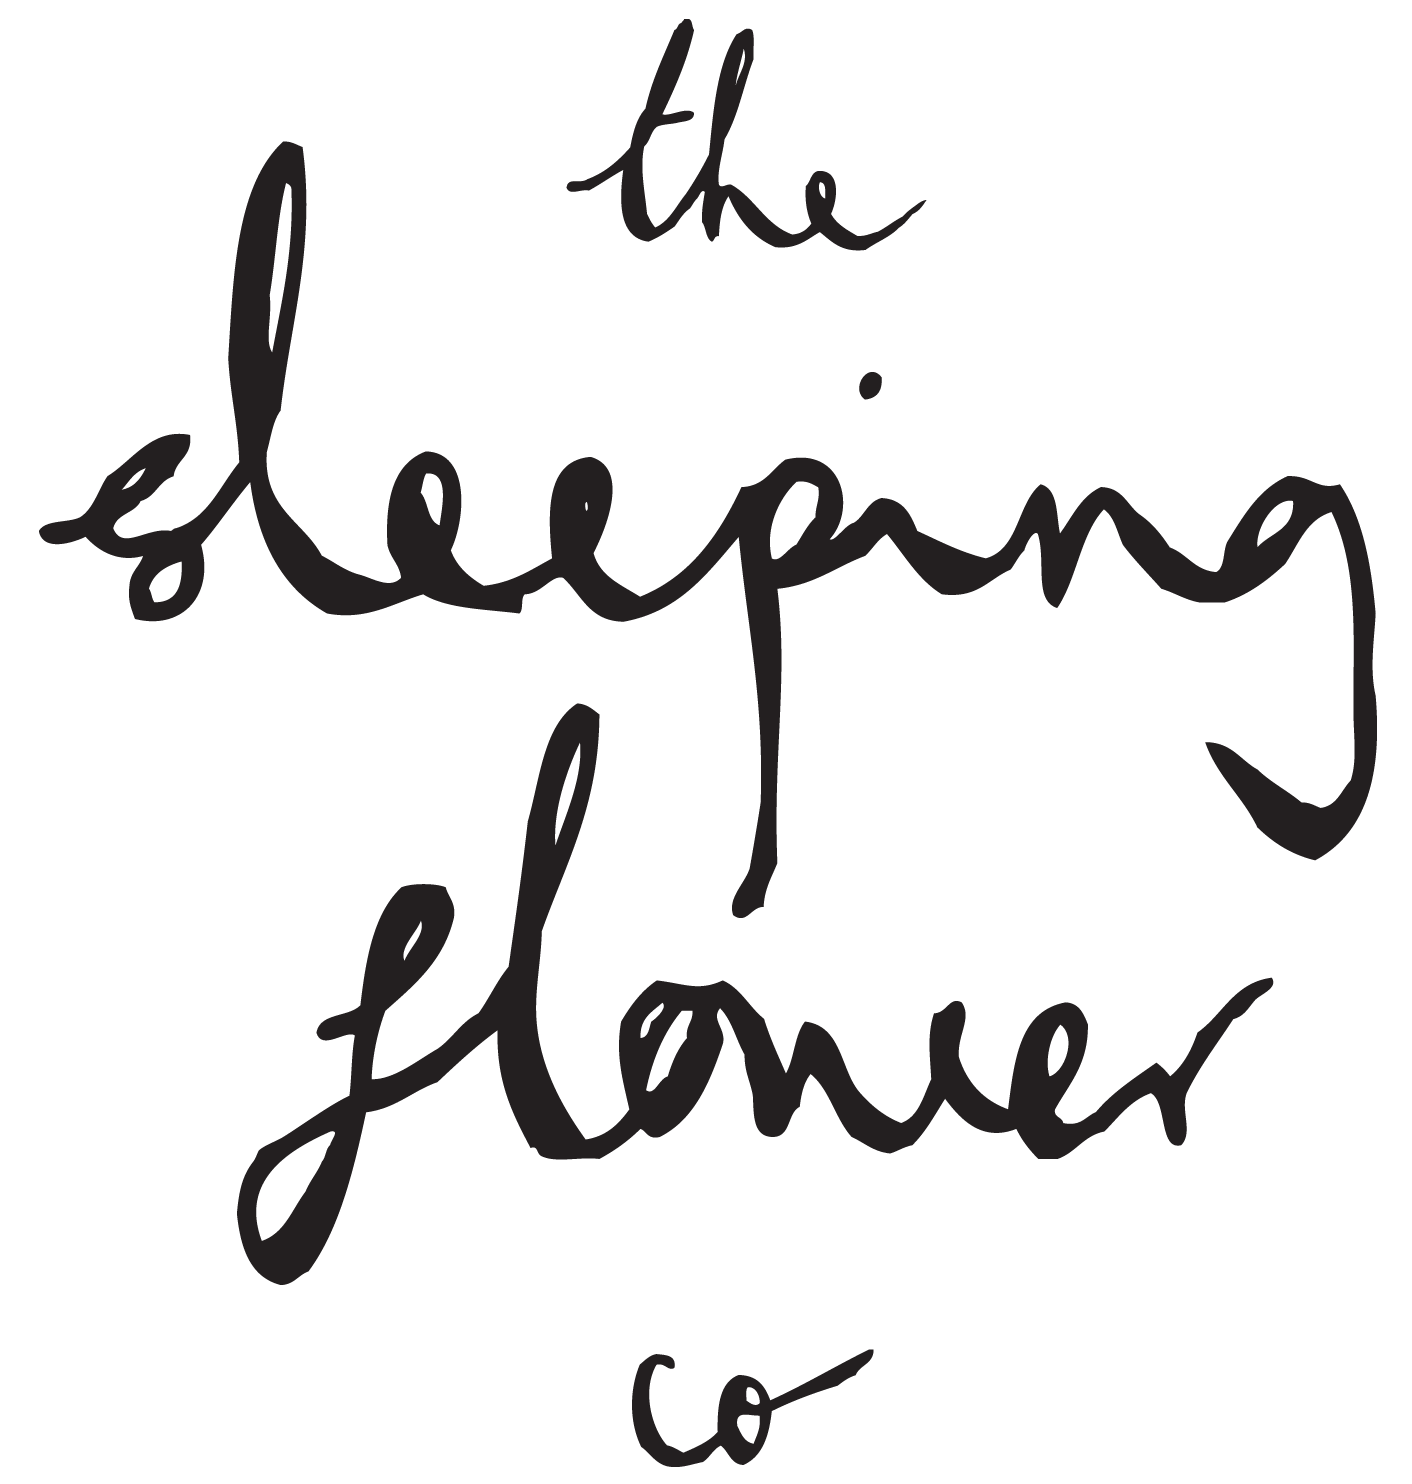 The Sleeping Flower Company